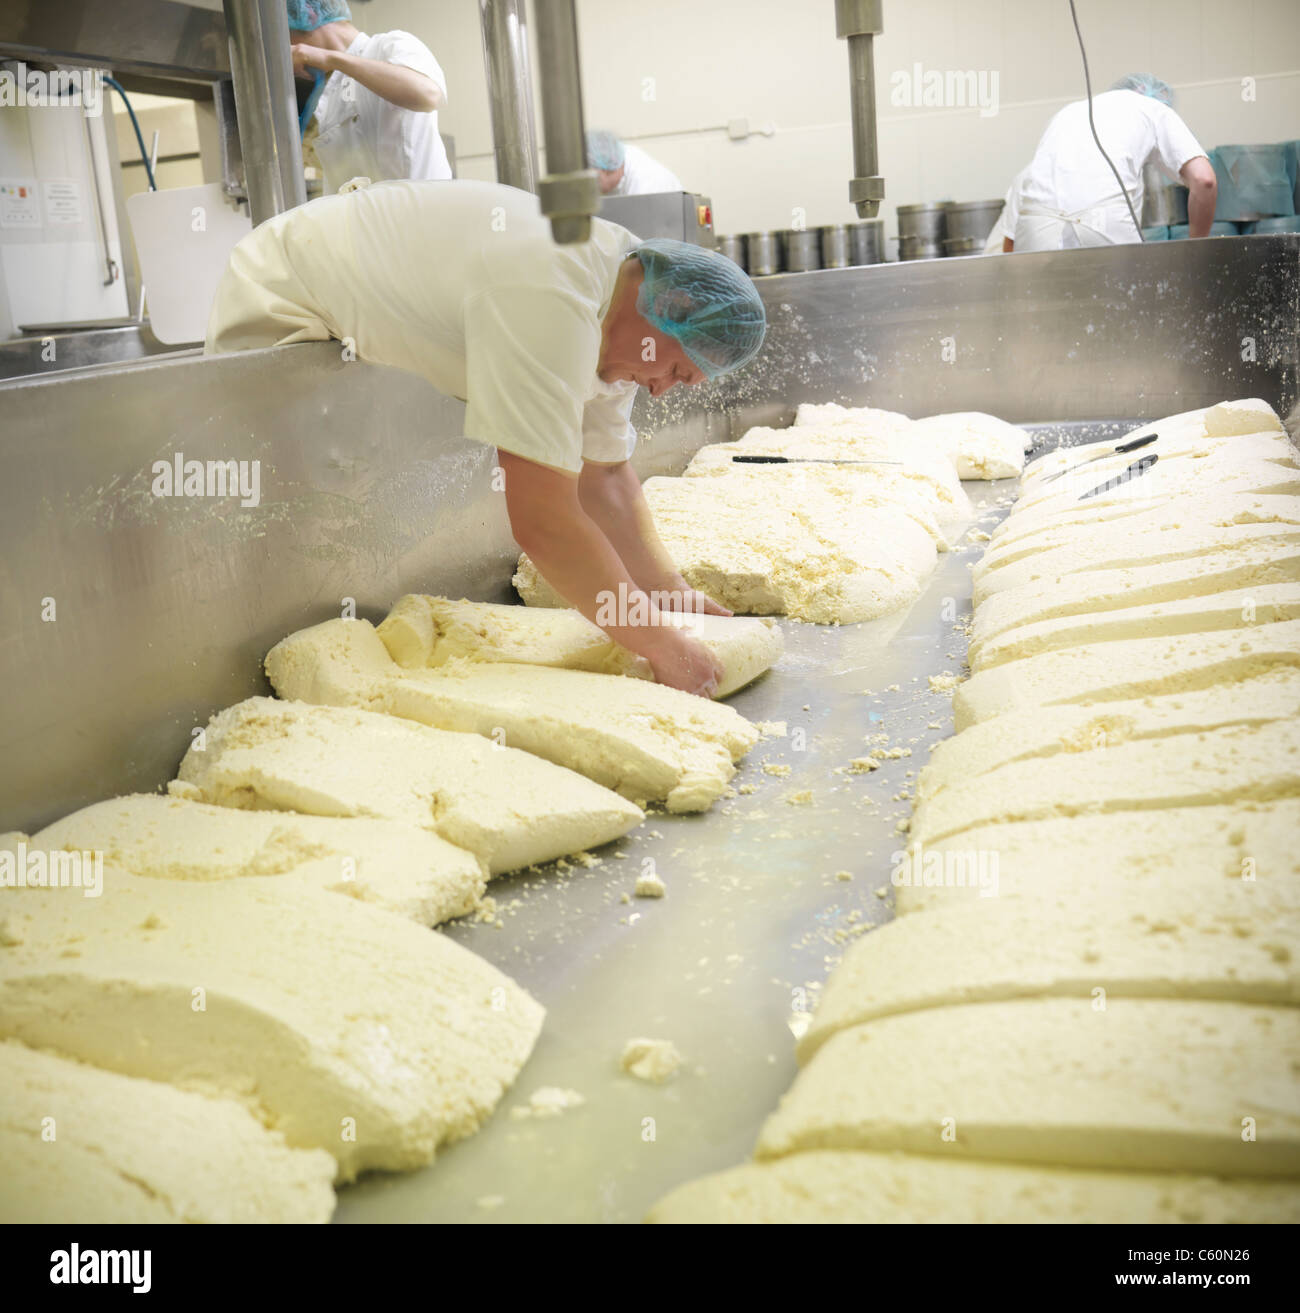 Worker making cheese in factory - Stock Image